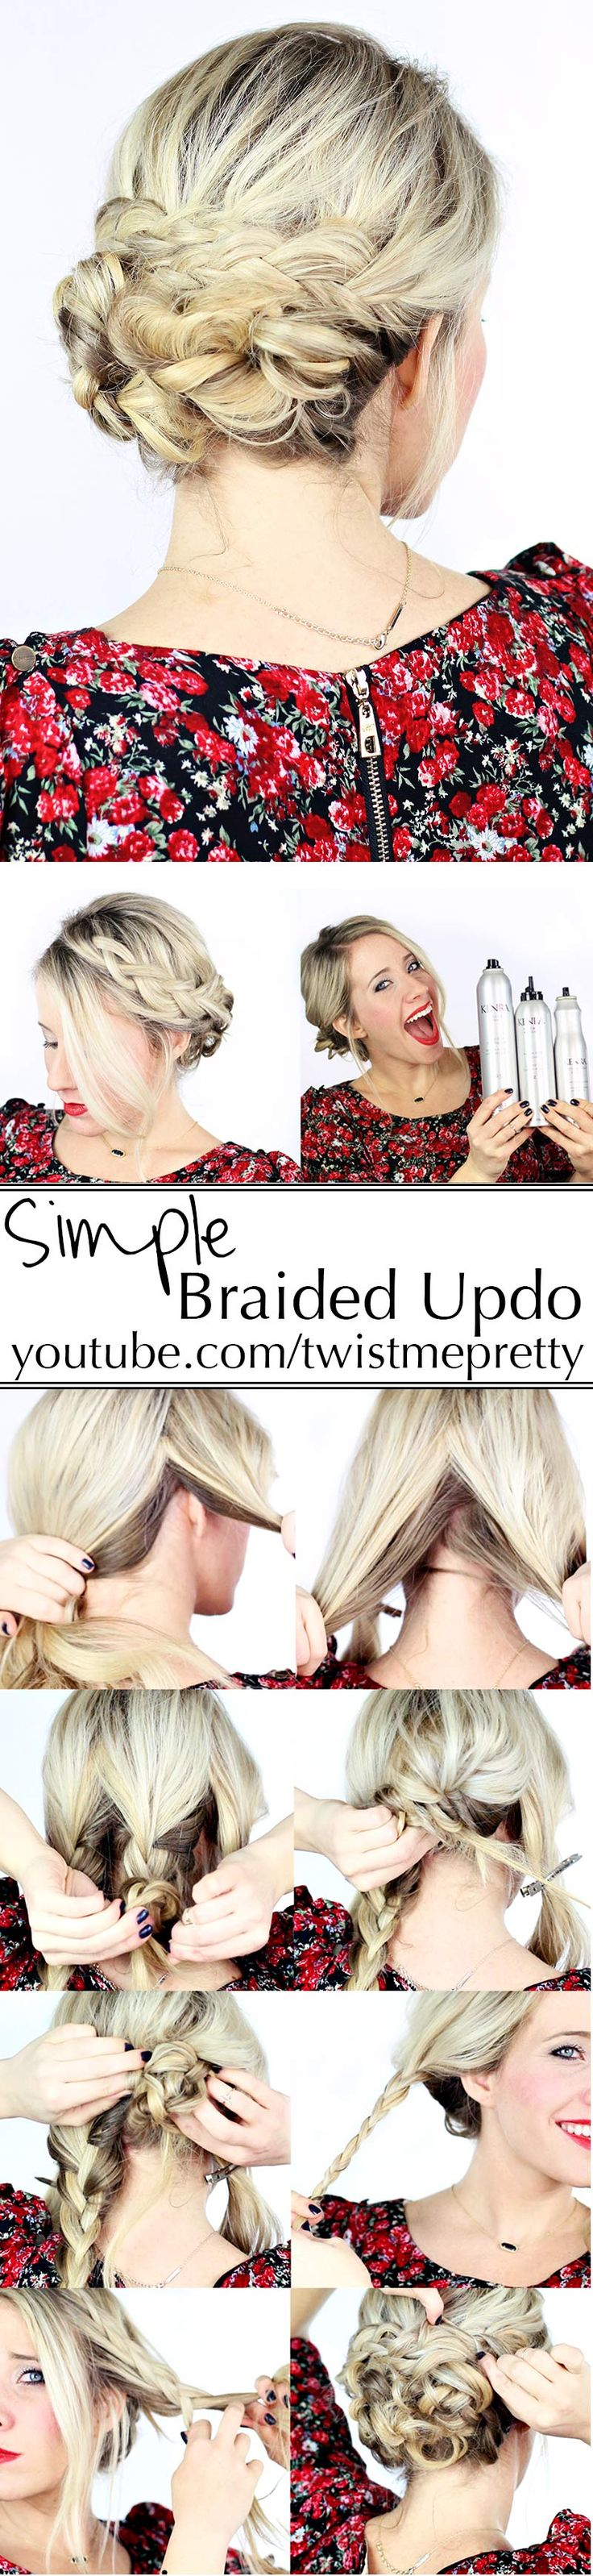 twisted braided updo